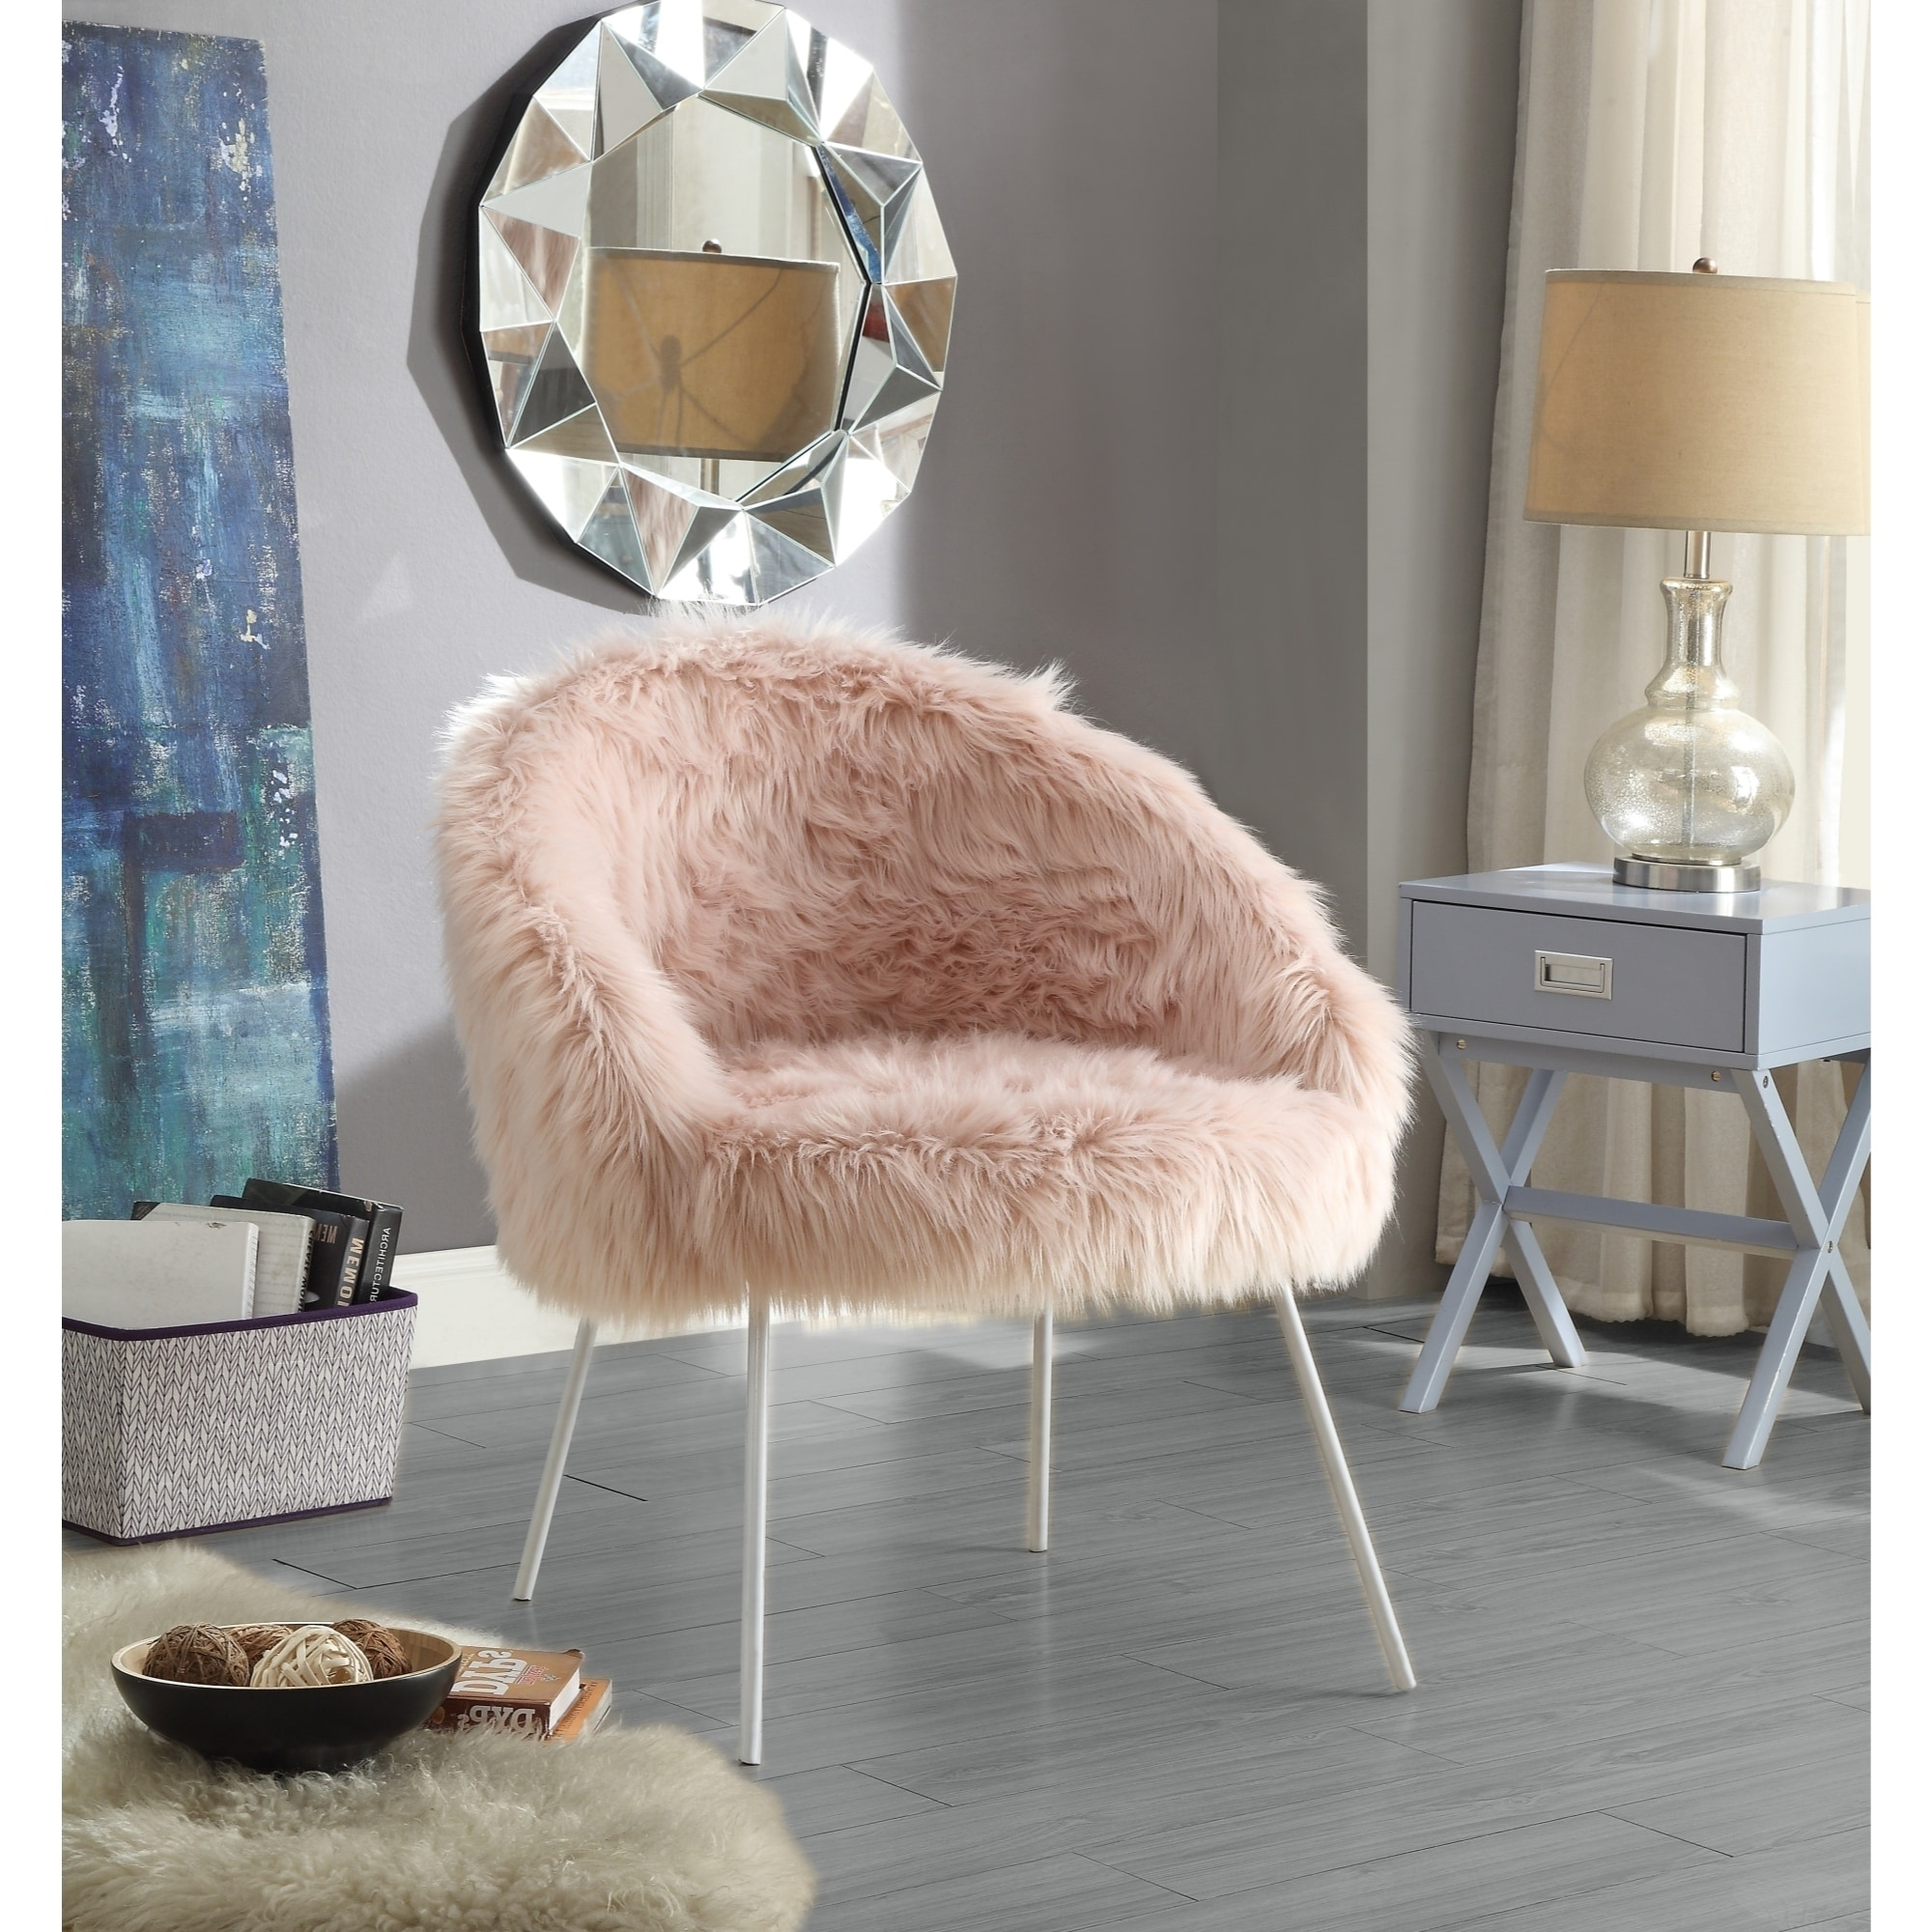 Shop Belle White Faux Fur Accent Chair With Metal Legs Overstock 16498053